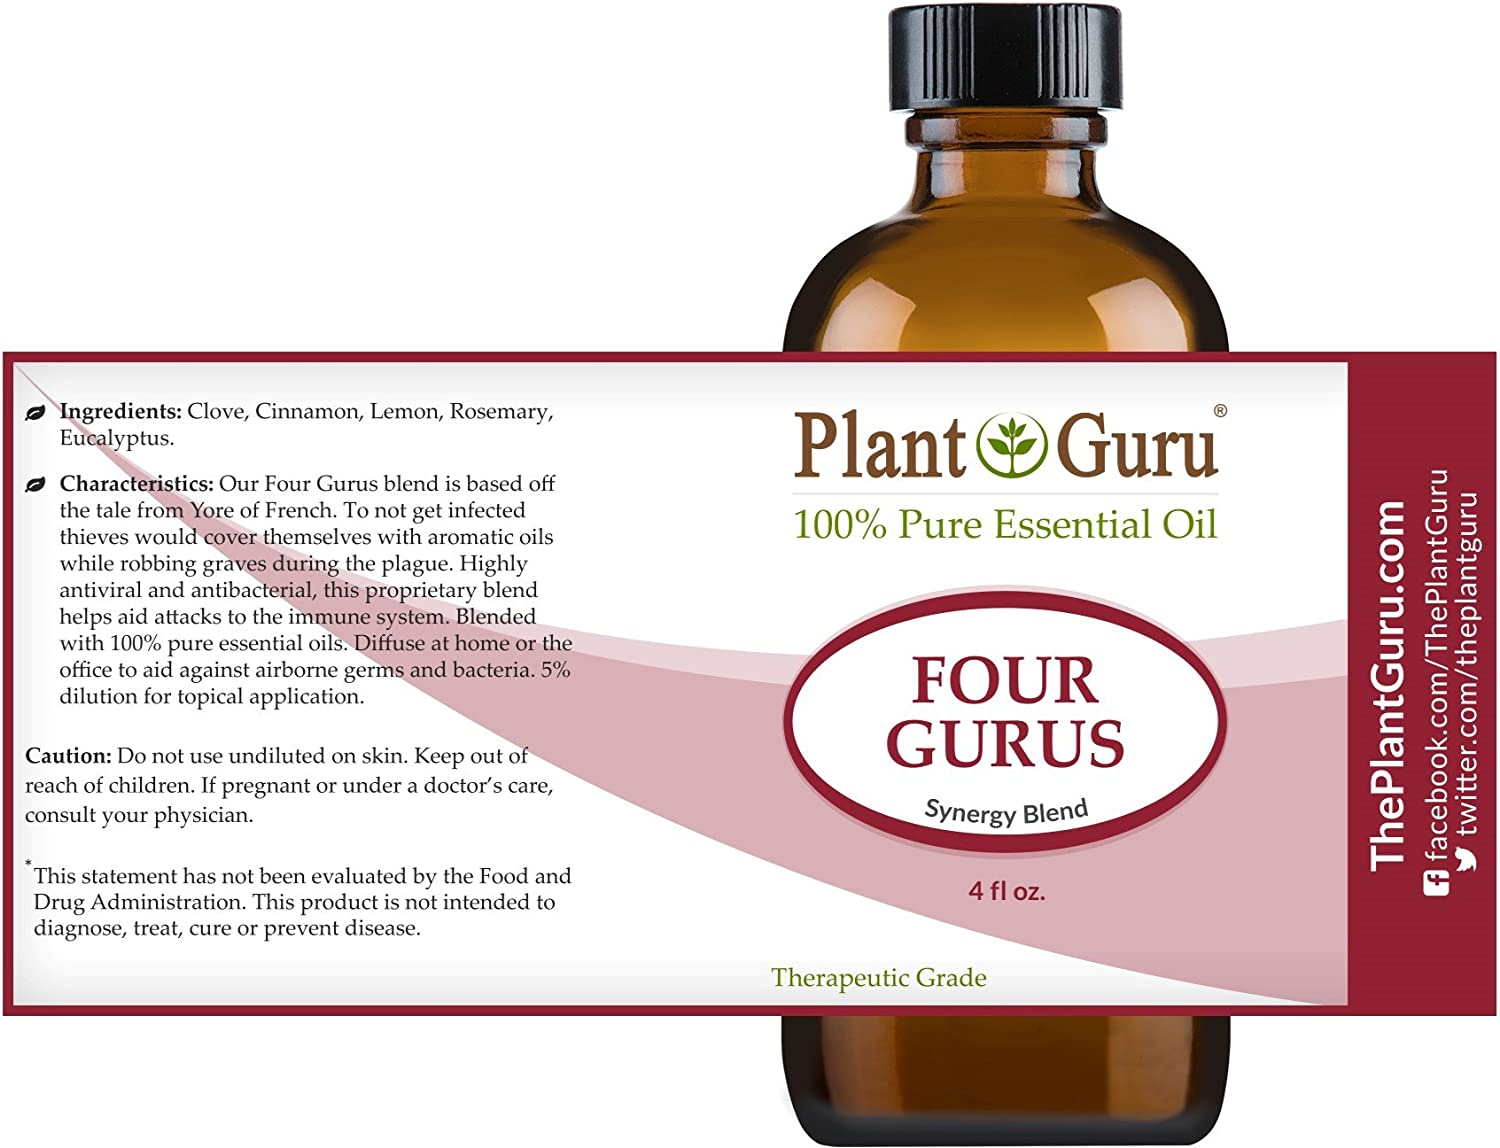 Thieves Oil Dilution Amazoncom Four Gurus Synergy Blend Essential Oil 4 Oz 100